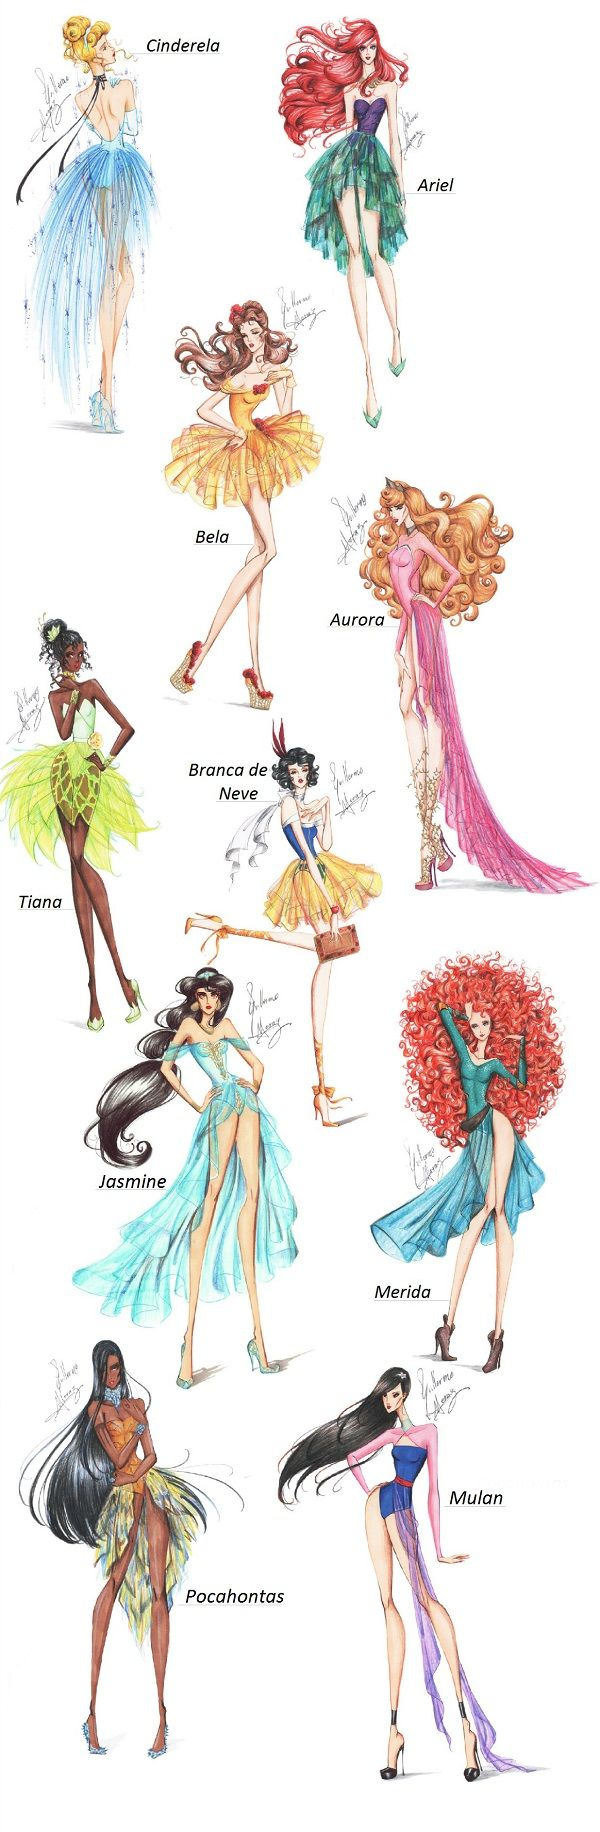 If the Disney Princesses were modern day models. Omg these sketches are so awesome!